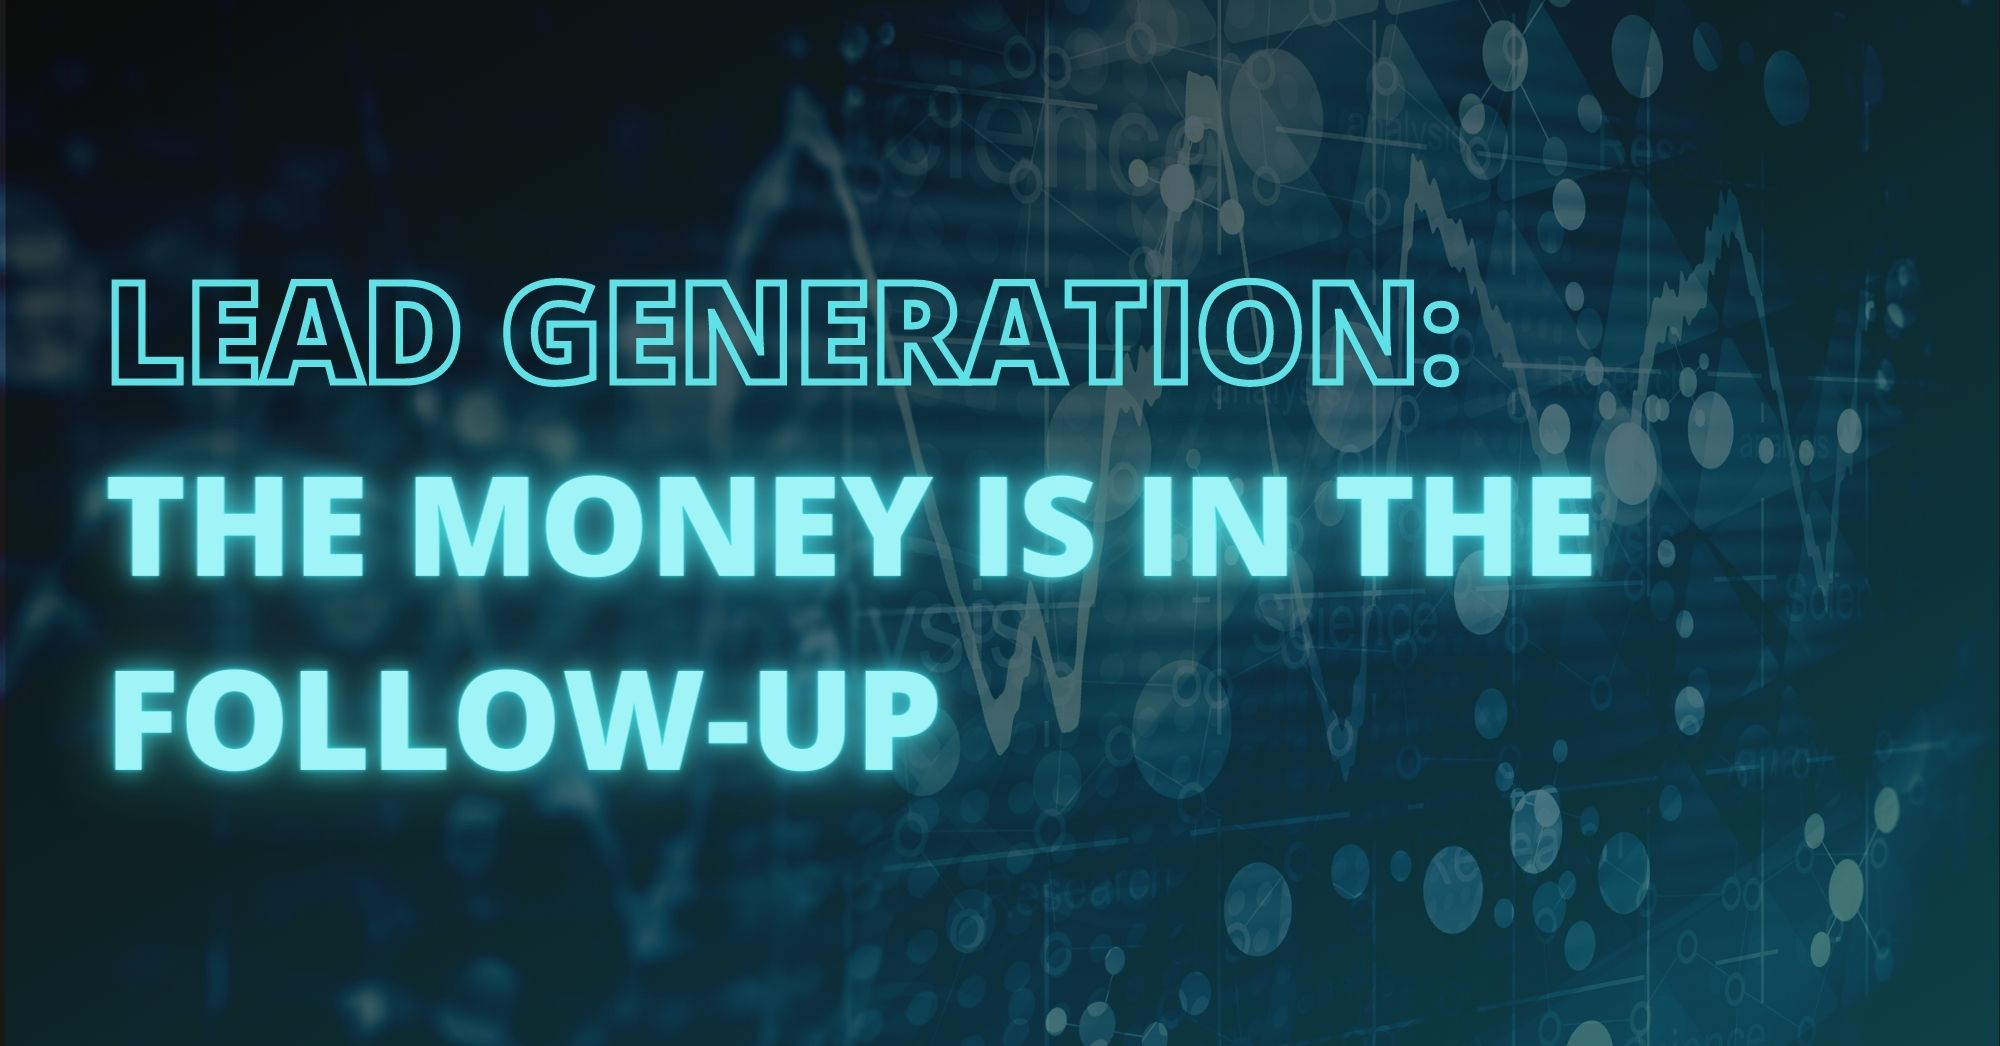 Lead Generation - The Money Is in the Follow-Up